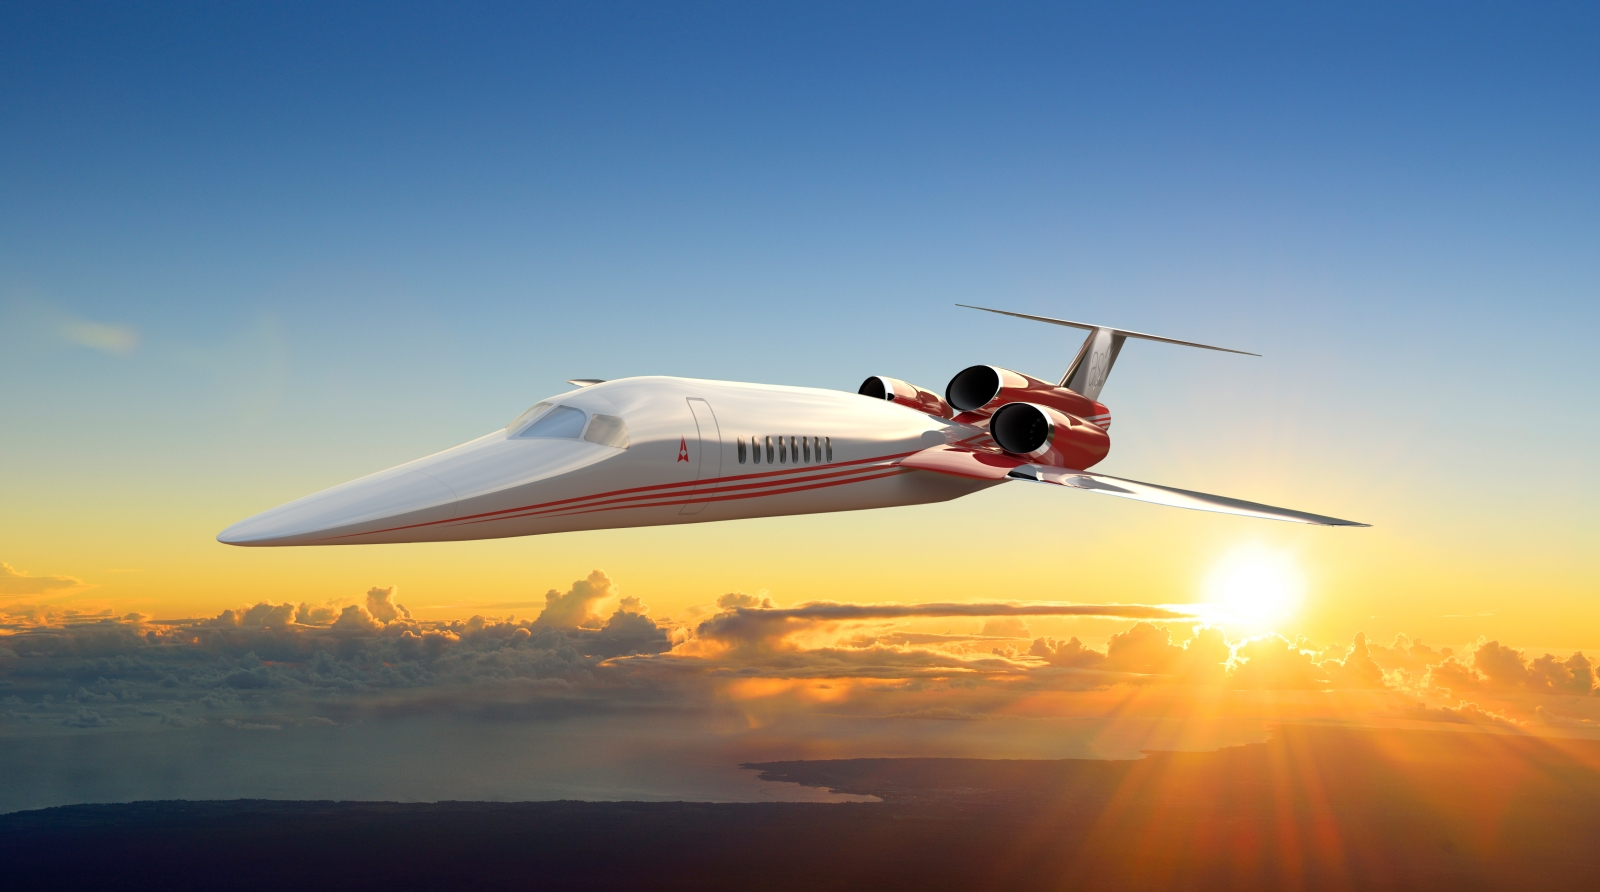 The Aerion AS2 supersonic business jet